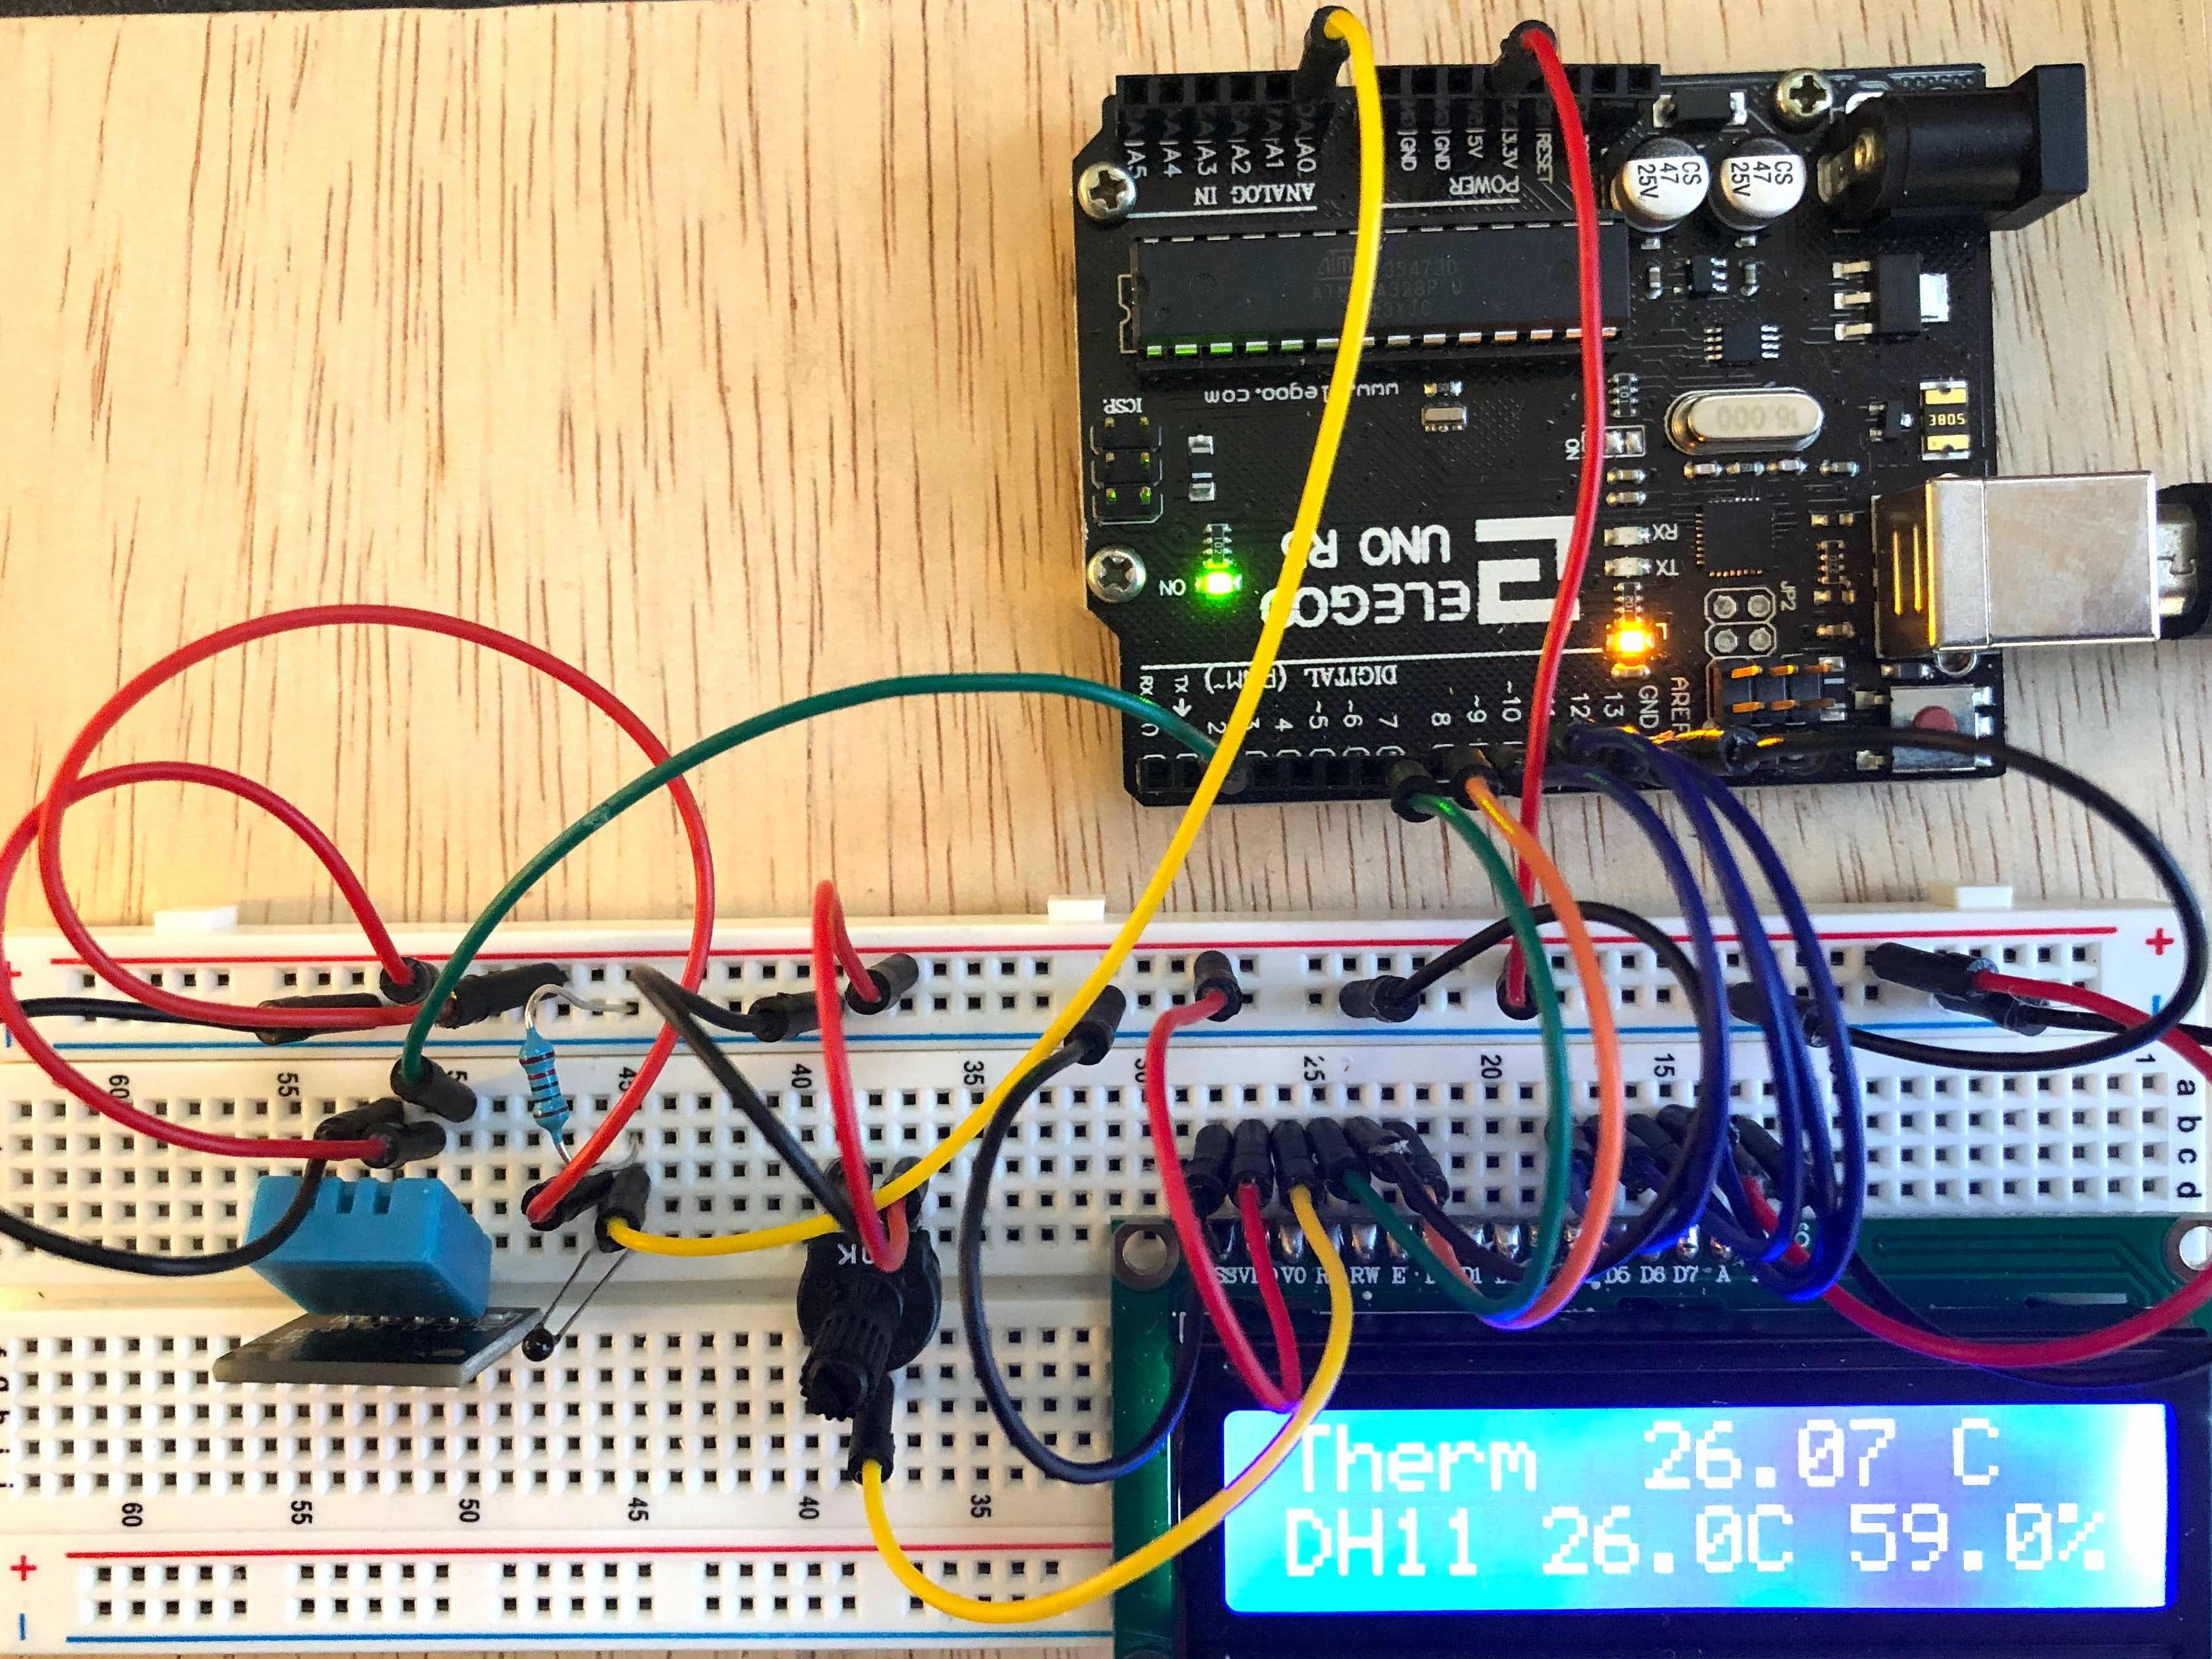 Two Temperatures and Humidity to Both Terminal and LCD